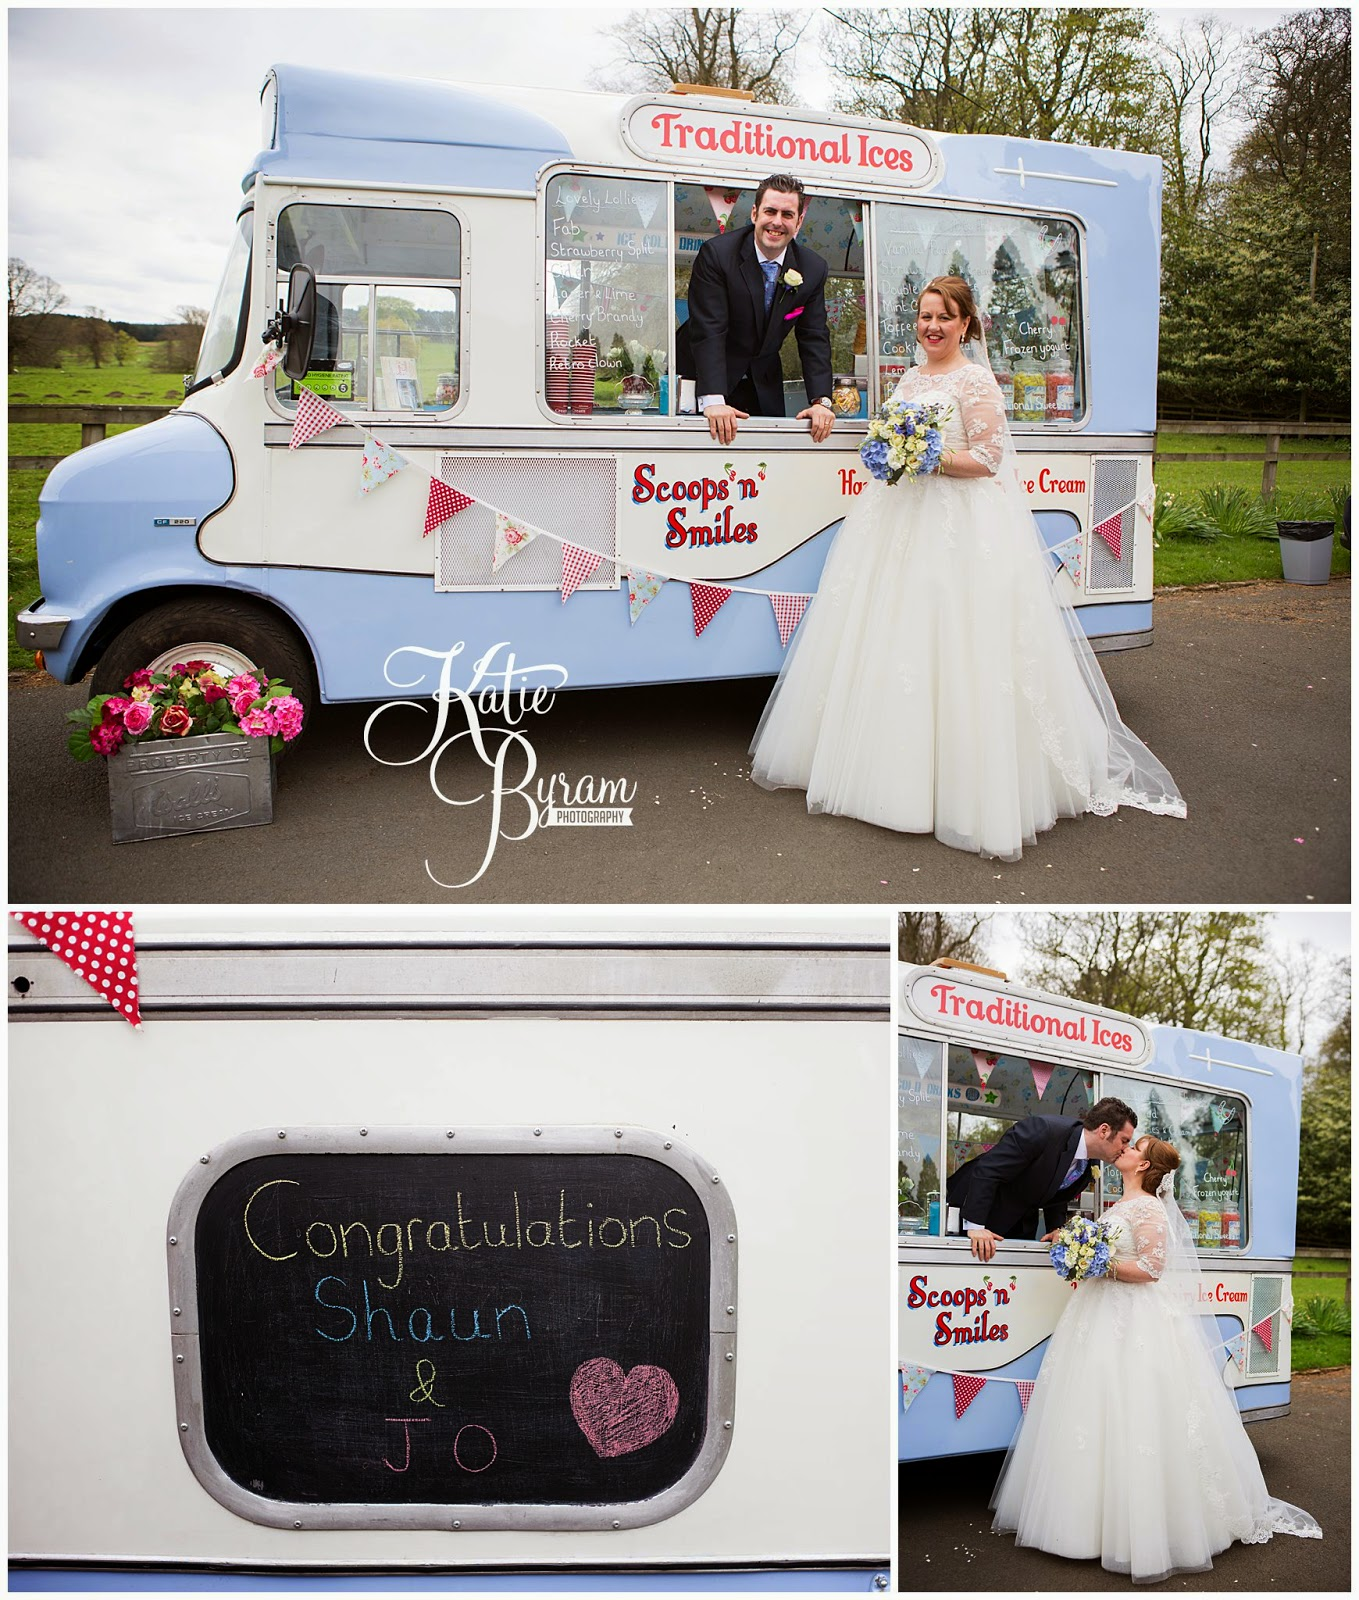 scoops and smiles, minsteracres wedding, lord crewe arms wedding, dog at wedding, scoops and smiles, katie byram photography, ice cream van hire newcastle, newcastle wedding photography, relaxed wedding photography, quirky, 50's wedding, alternative wedding, irregular choice, wedding dress with sleeves